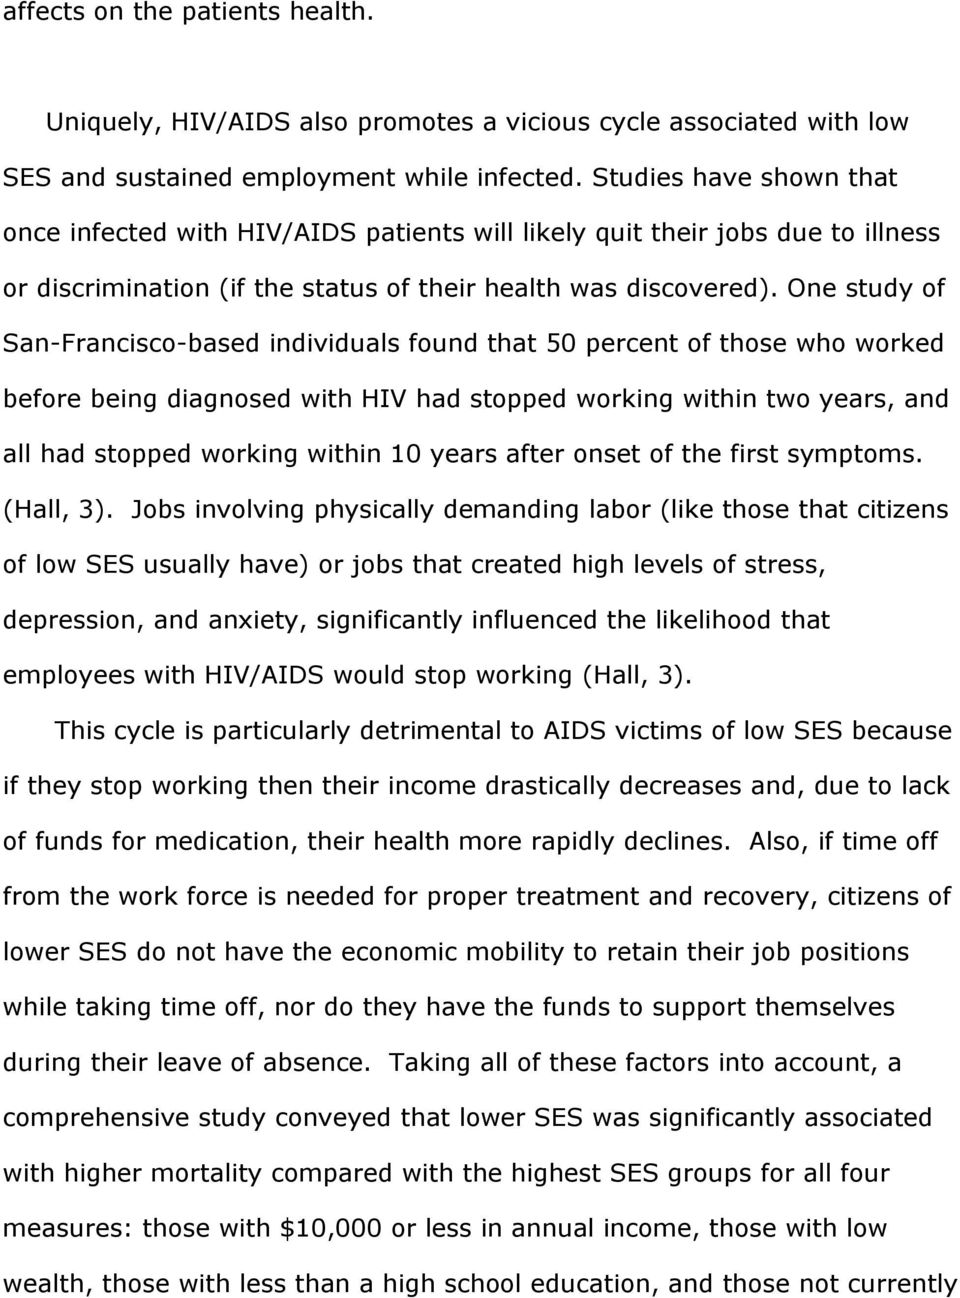 One study of San-Francisco-based individuals found that 50 percent of those who worked before being diagnosed with HIV had stopped working within two years, and all had stopped working within 10